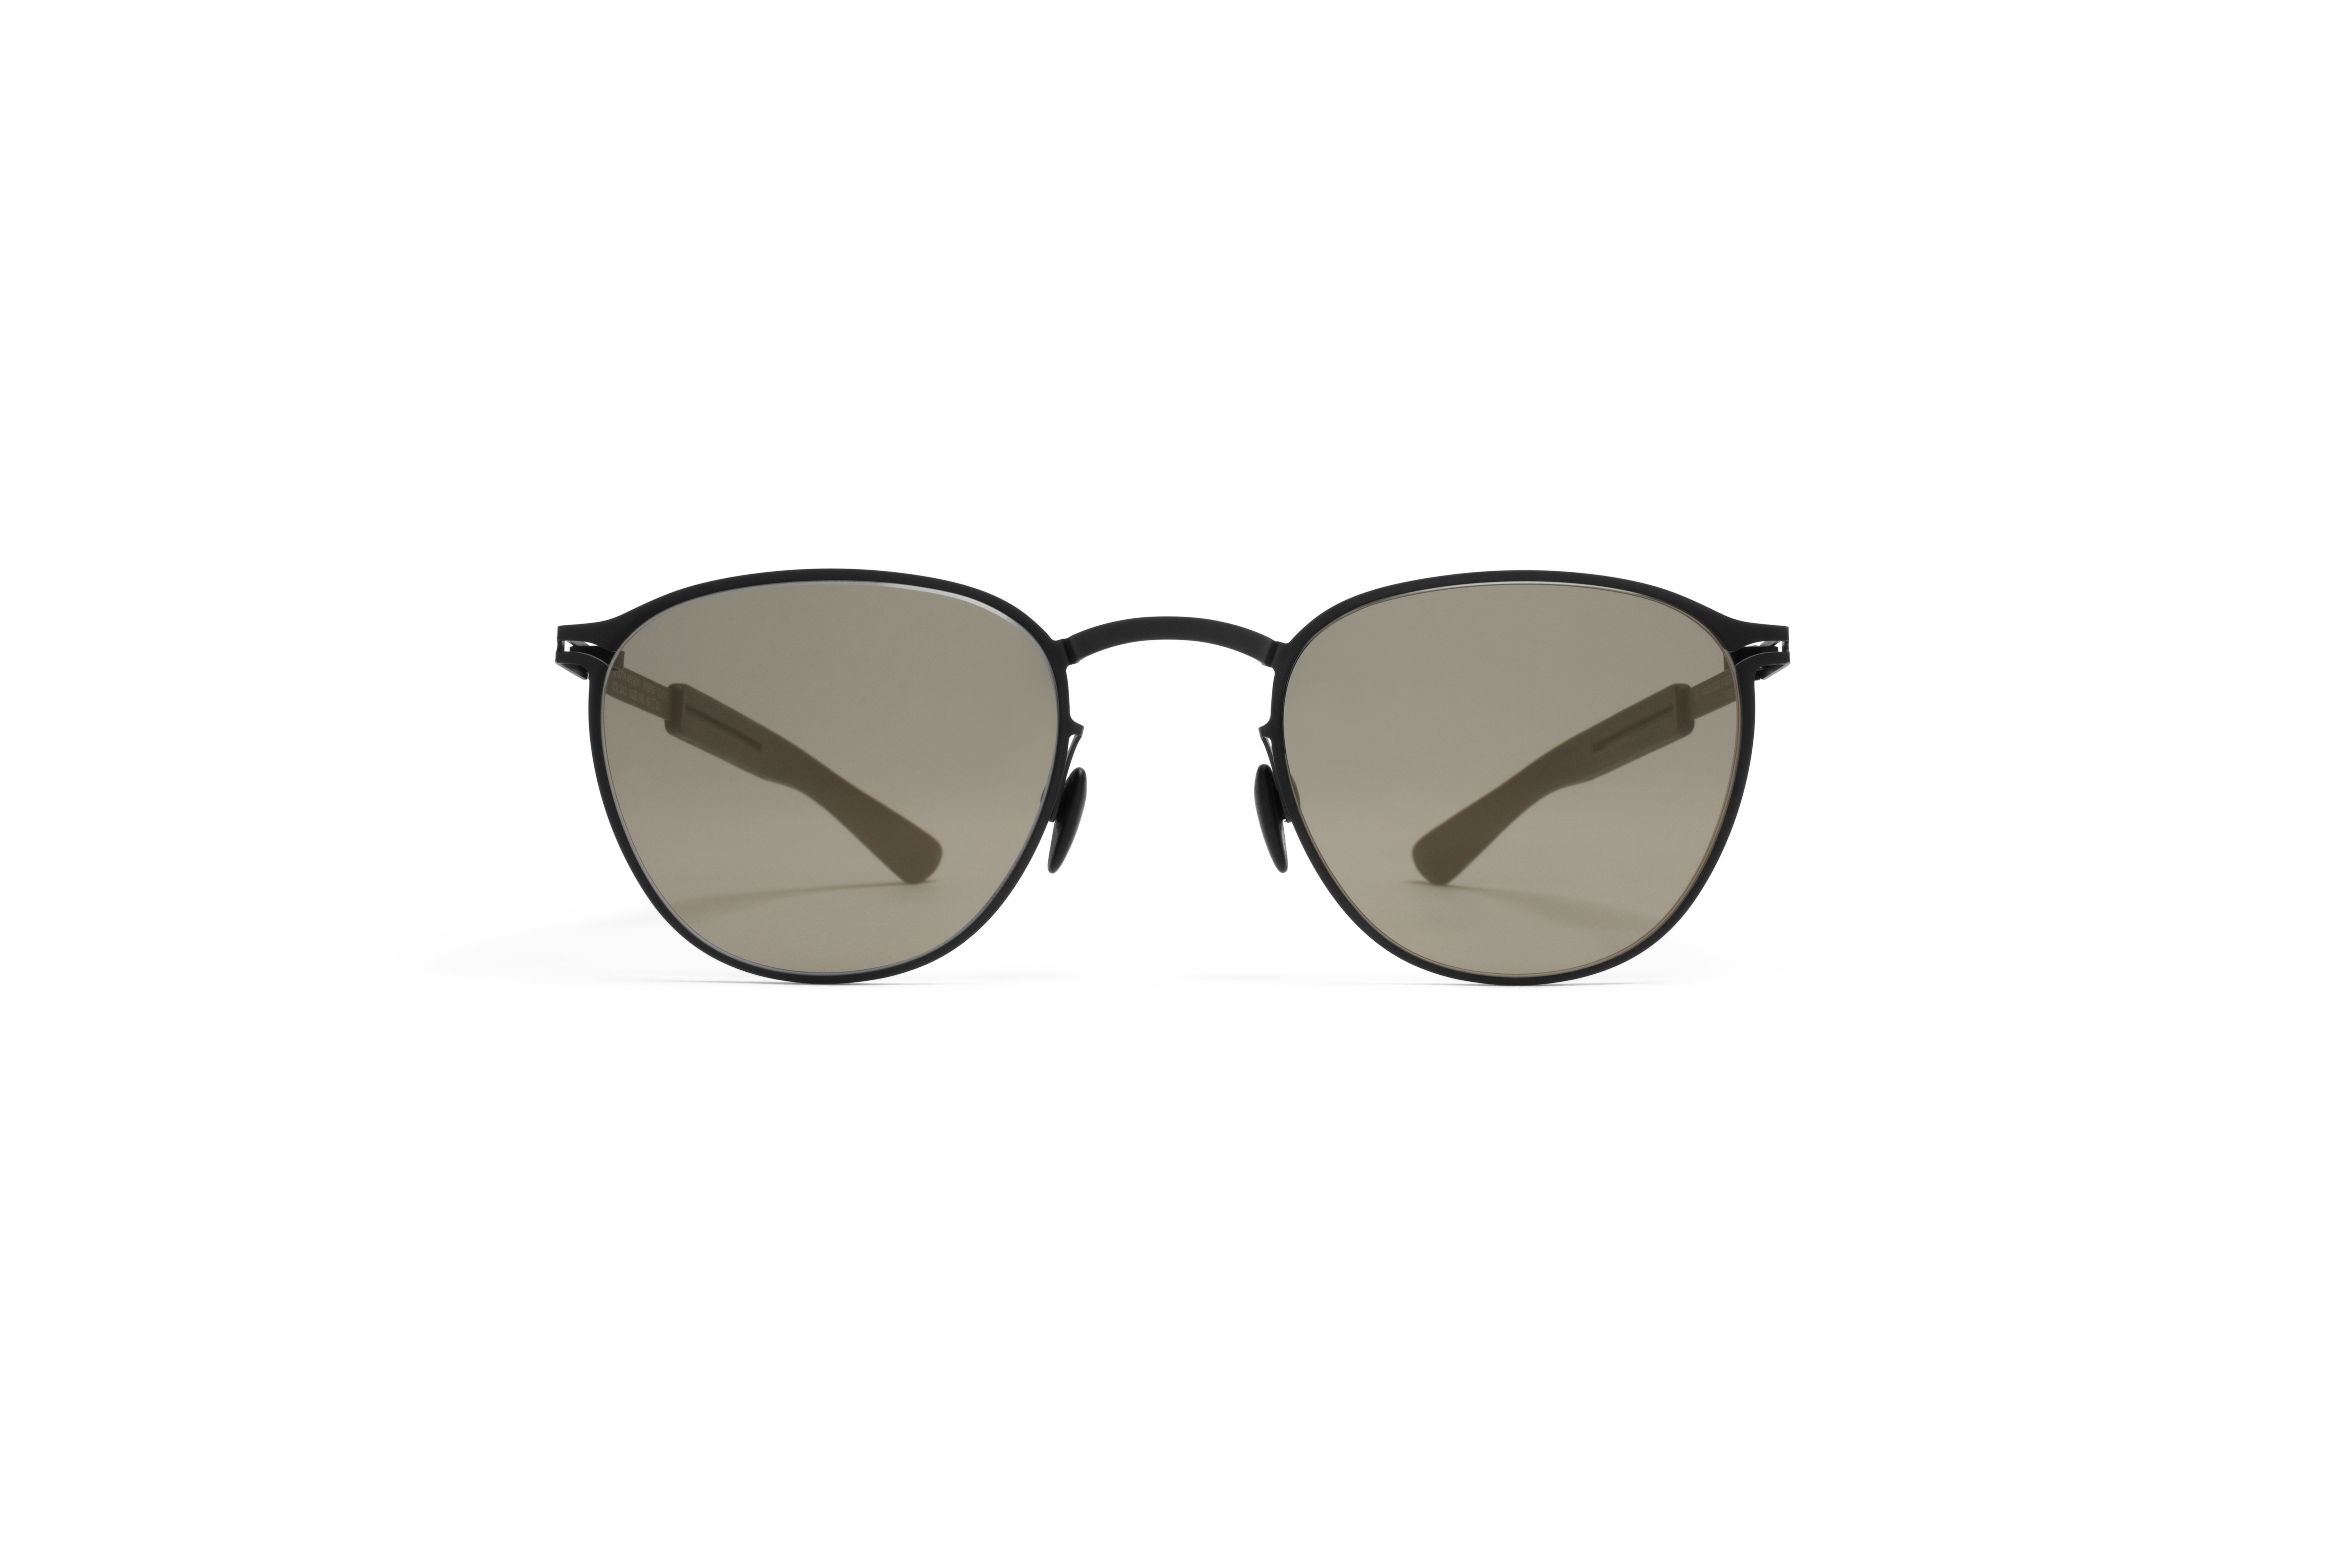 MYKITA Mylon Rx Clove Mh1 Black Pitch Black Gunmet57d0307447077